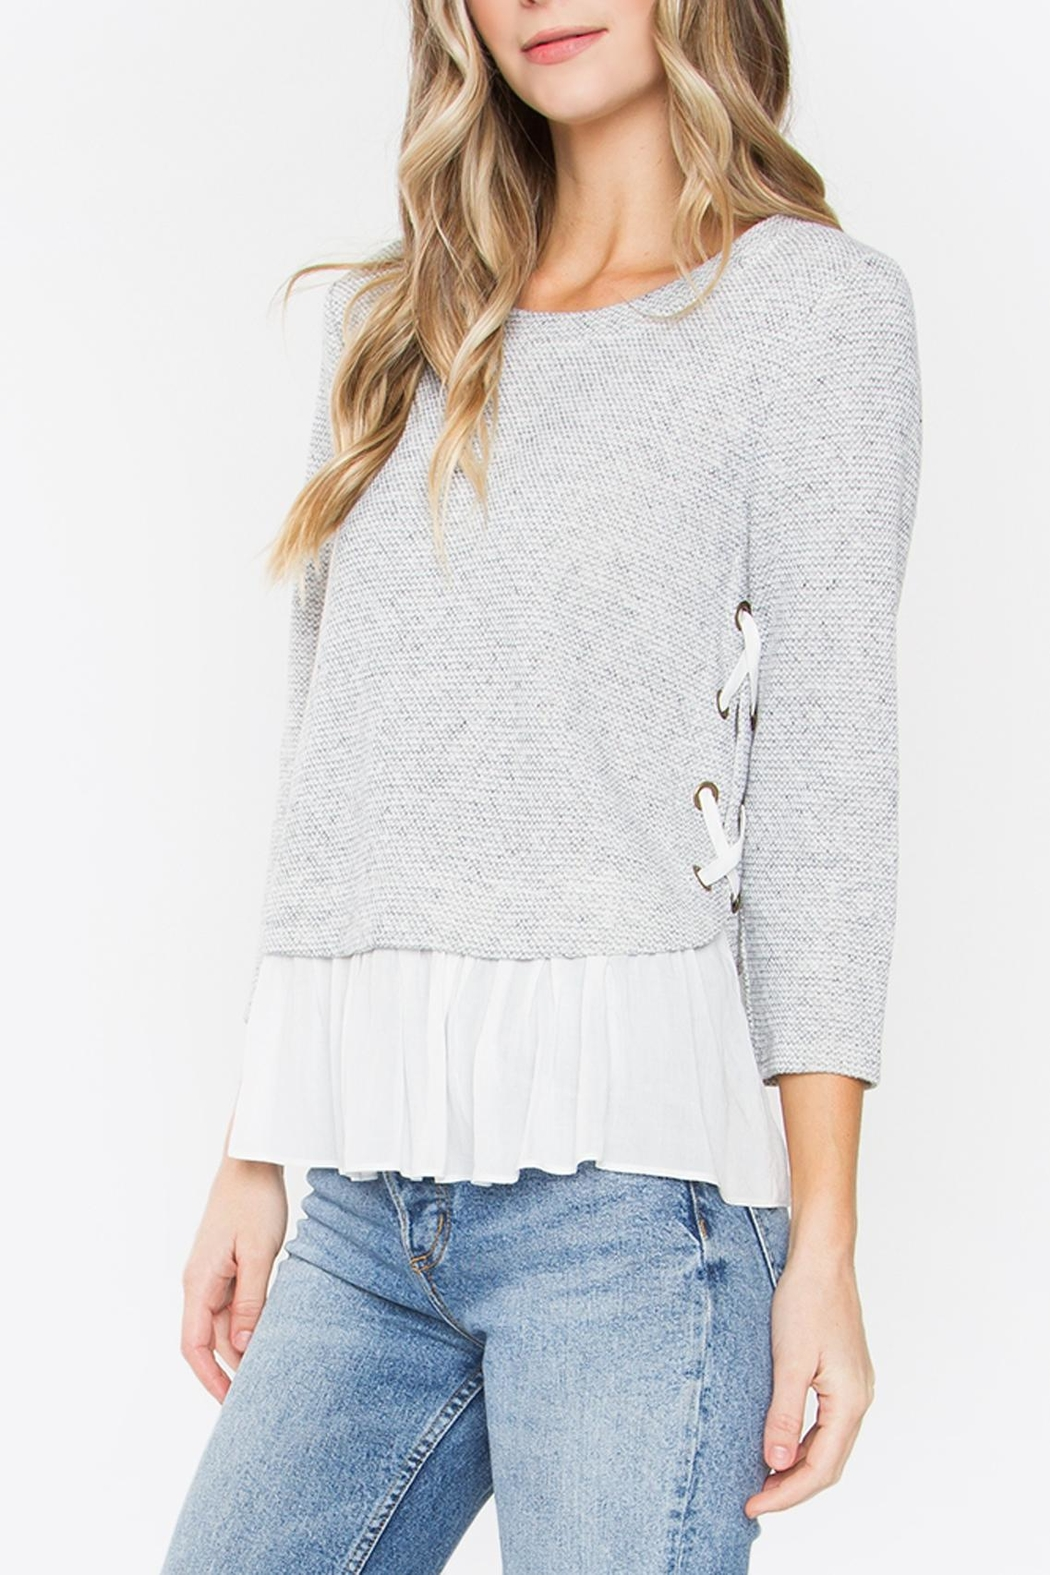 Sugarlips Lace-Up Peplum Sweater - Front Cropped Image